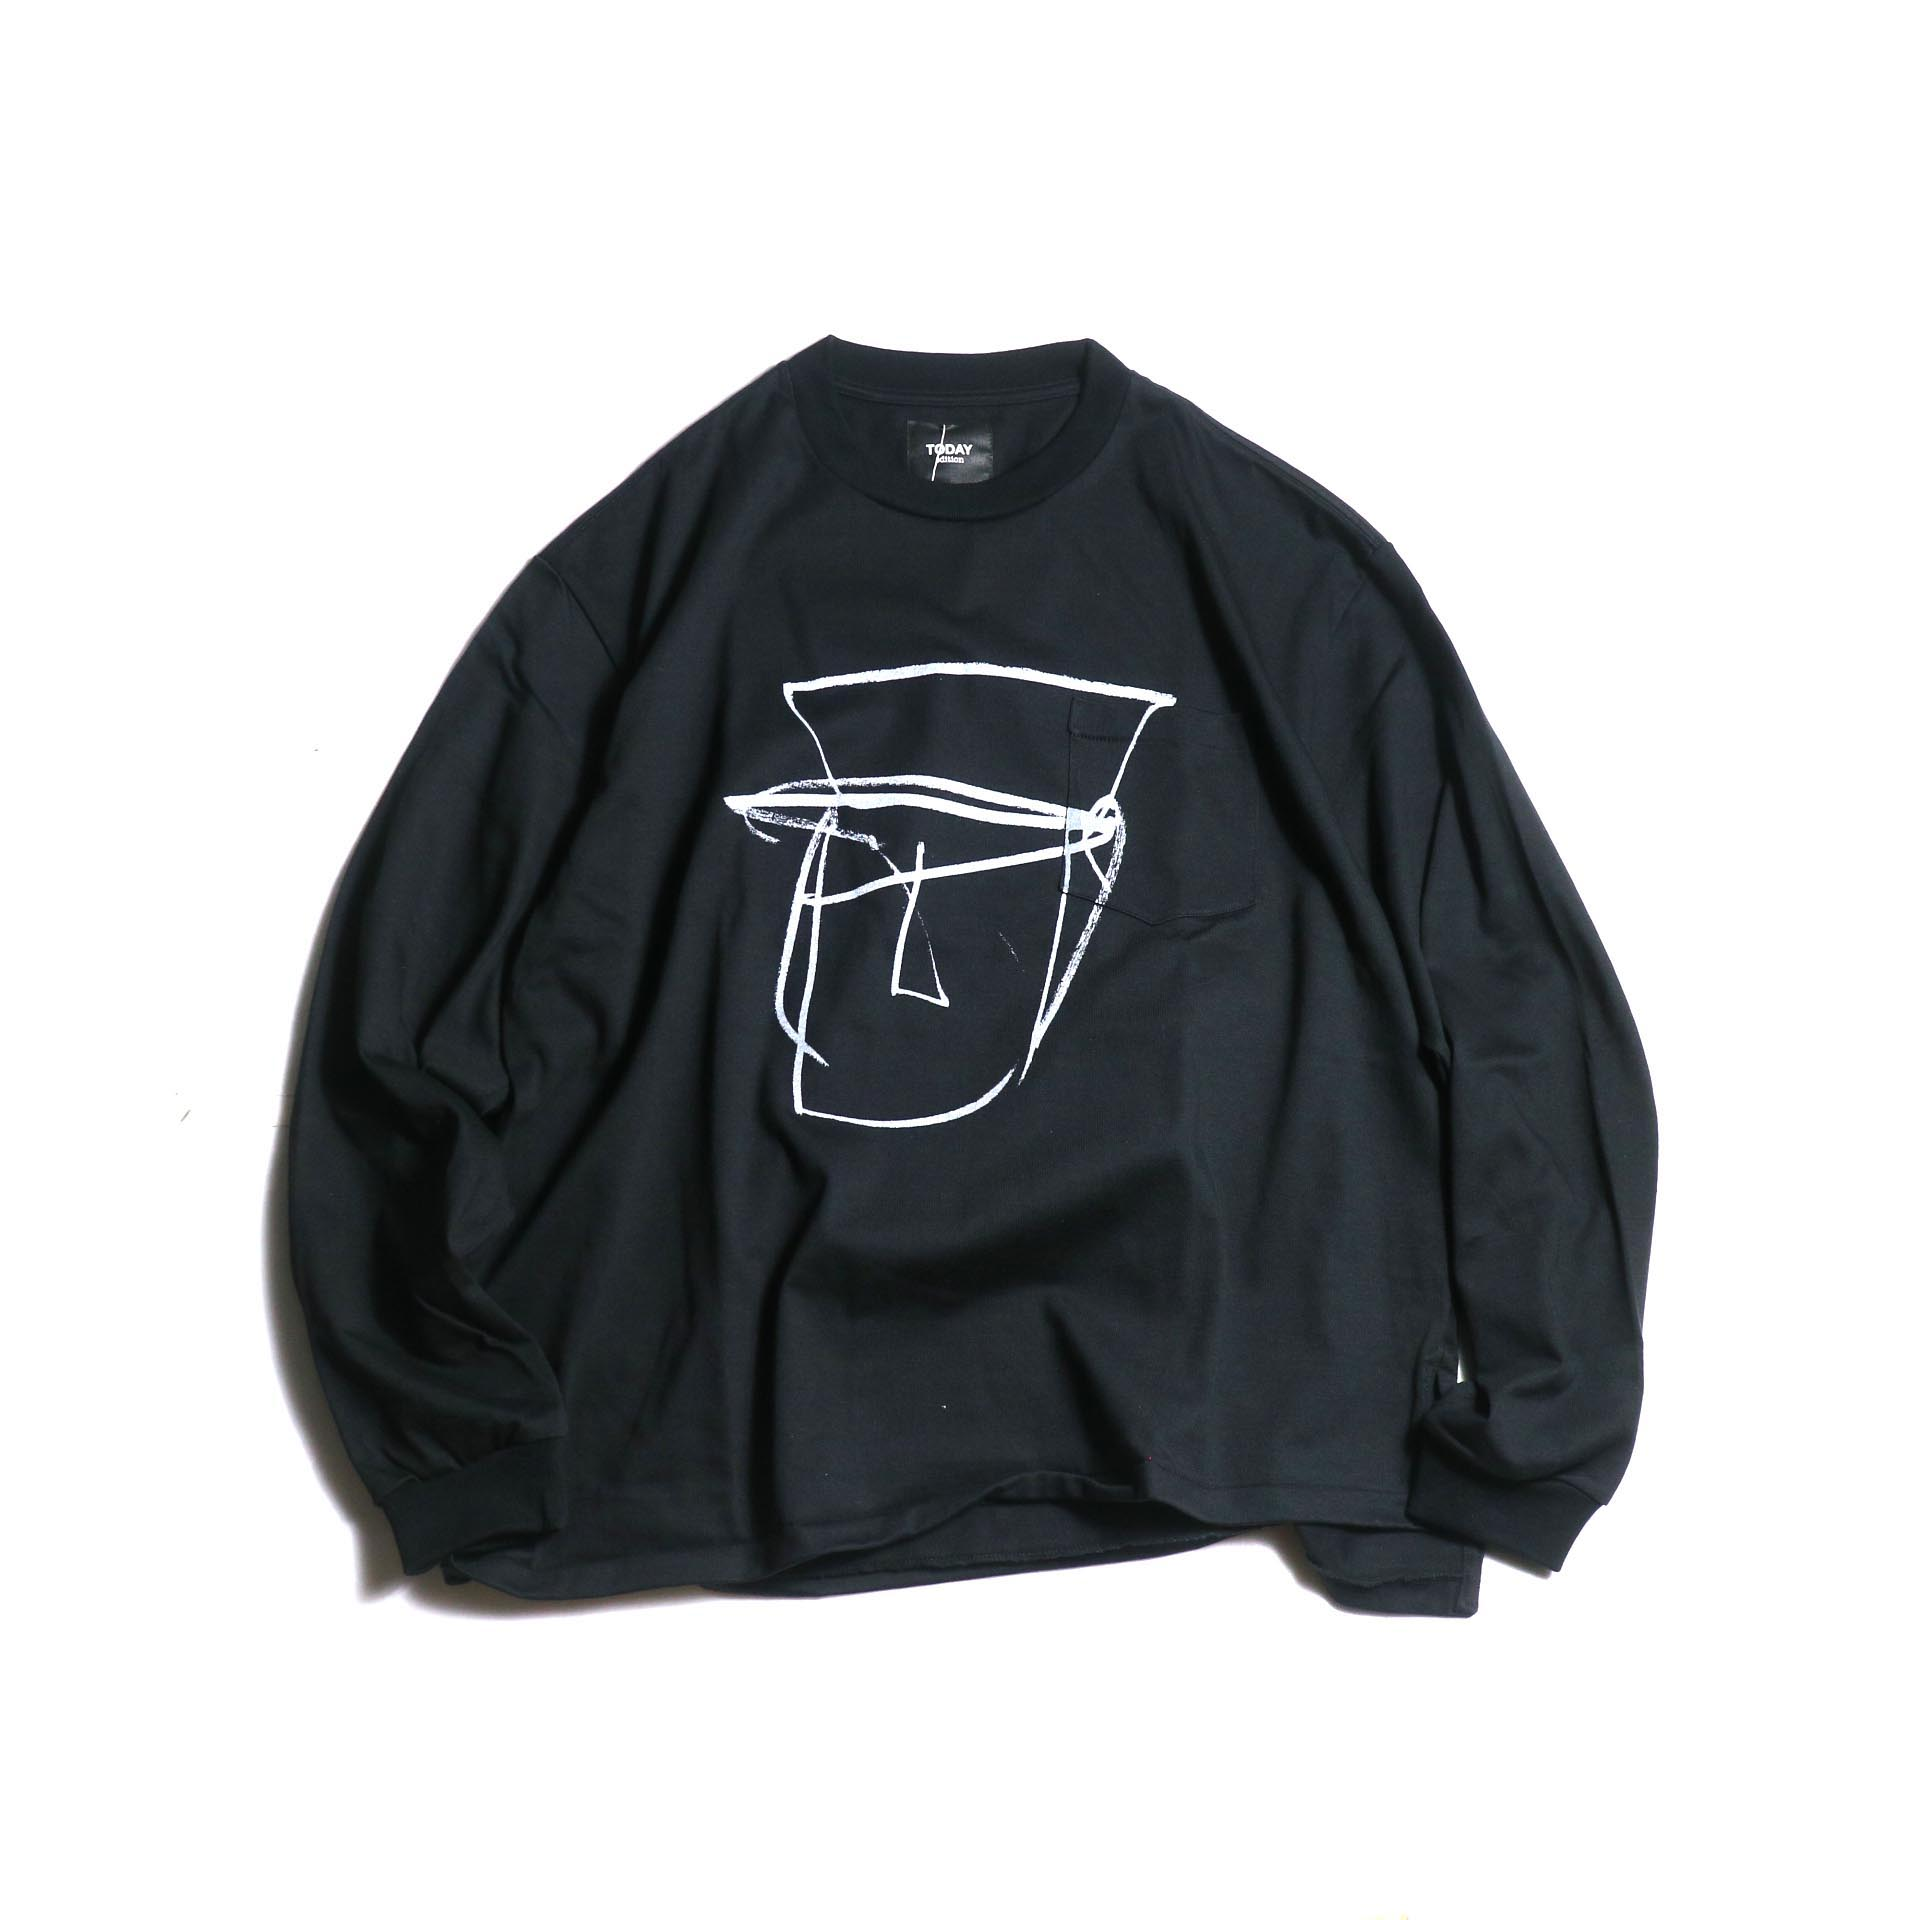 TODAY edition / Drawing Tee #1 (Black)